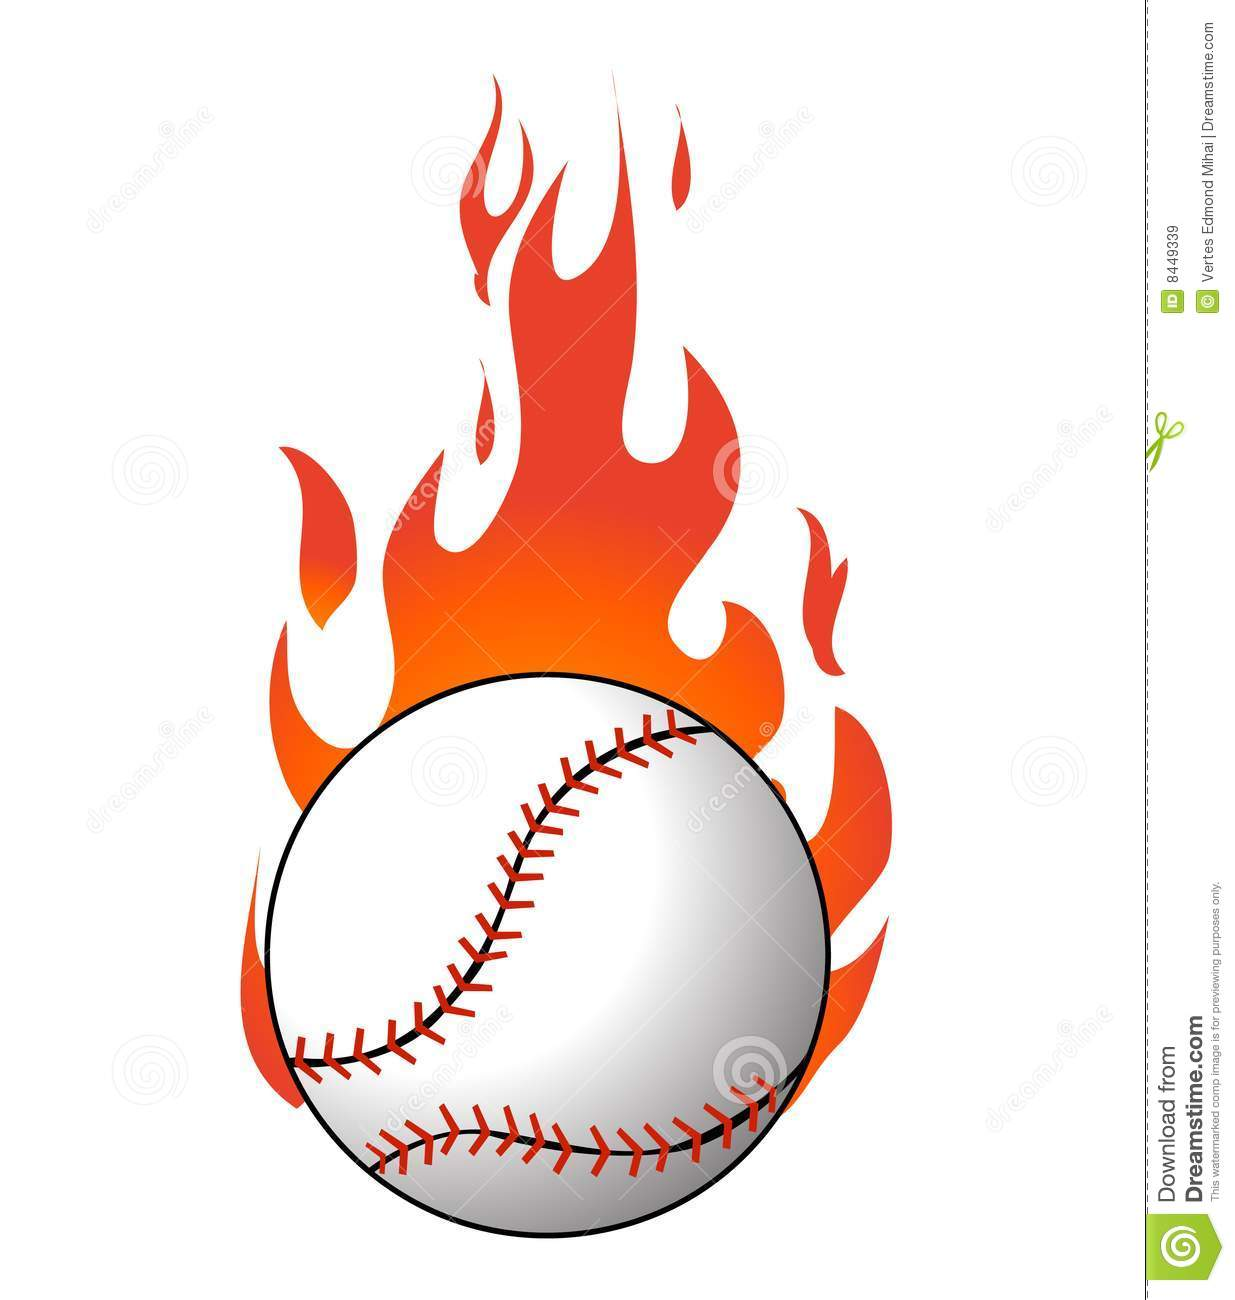 Baseball With Flames Vector Royalty Free Stock Images - Image: 8449339